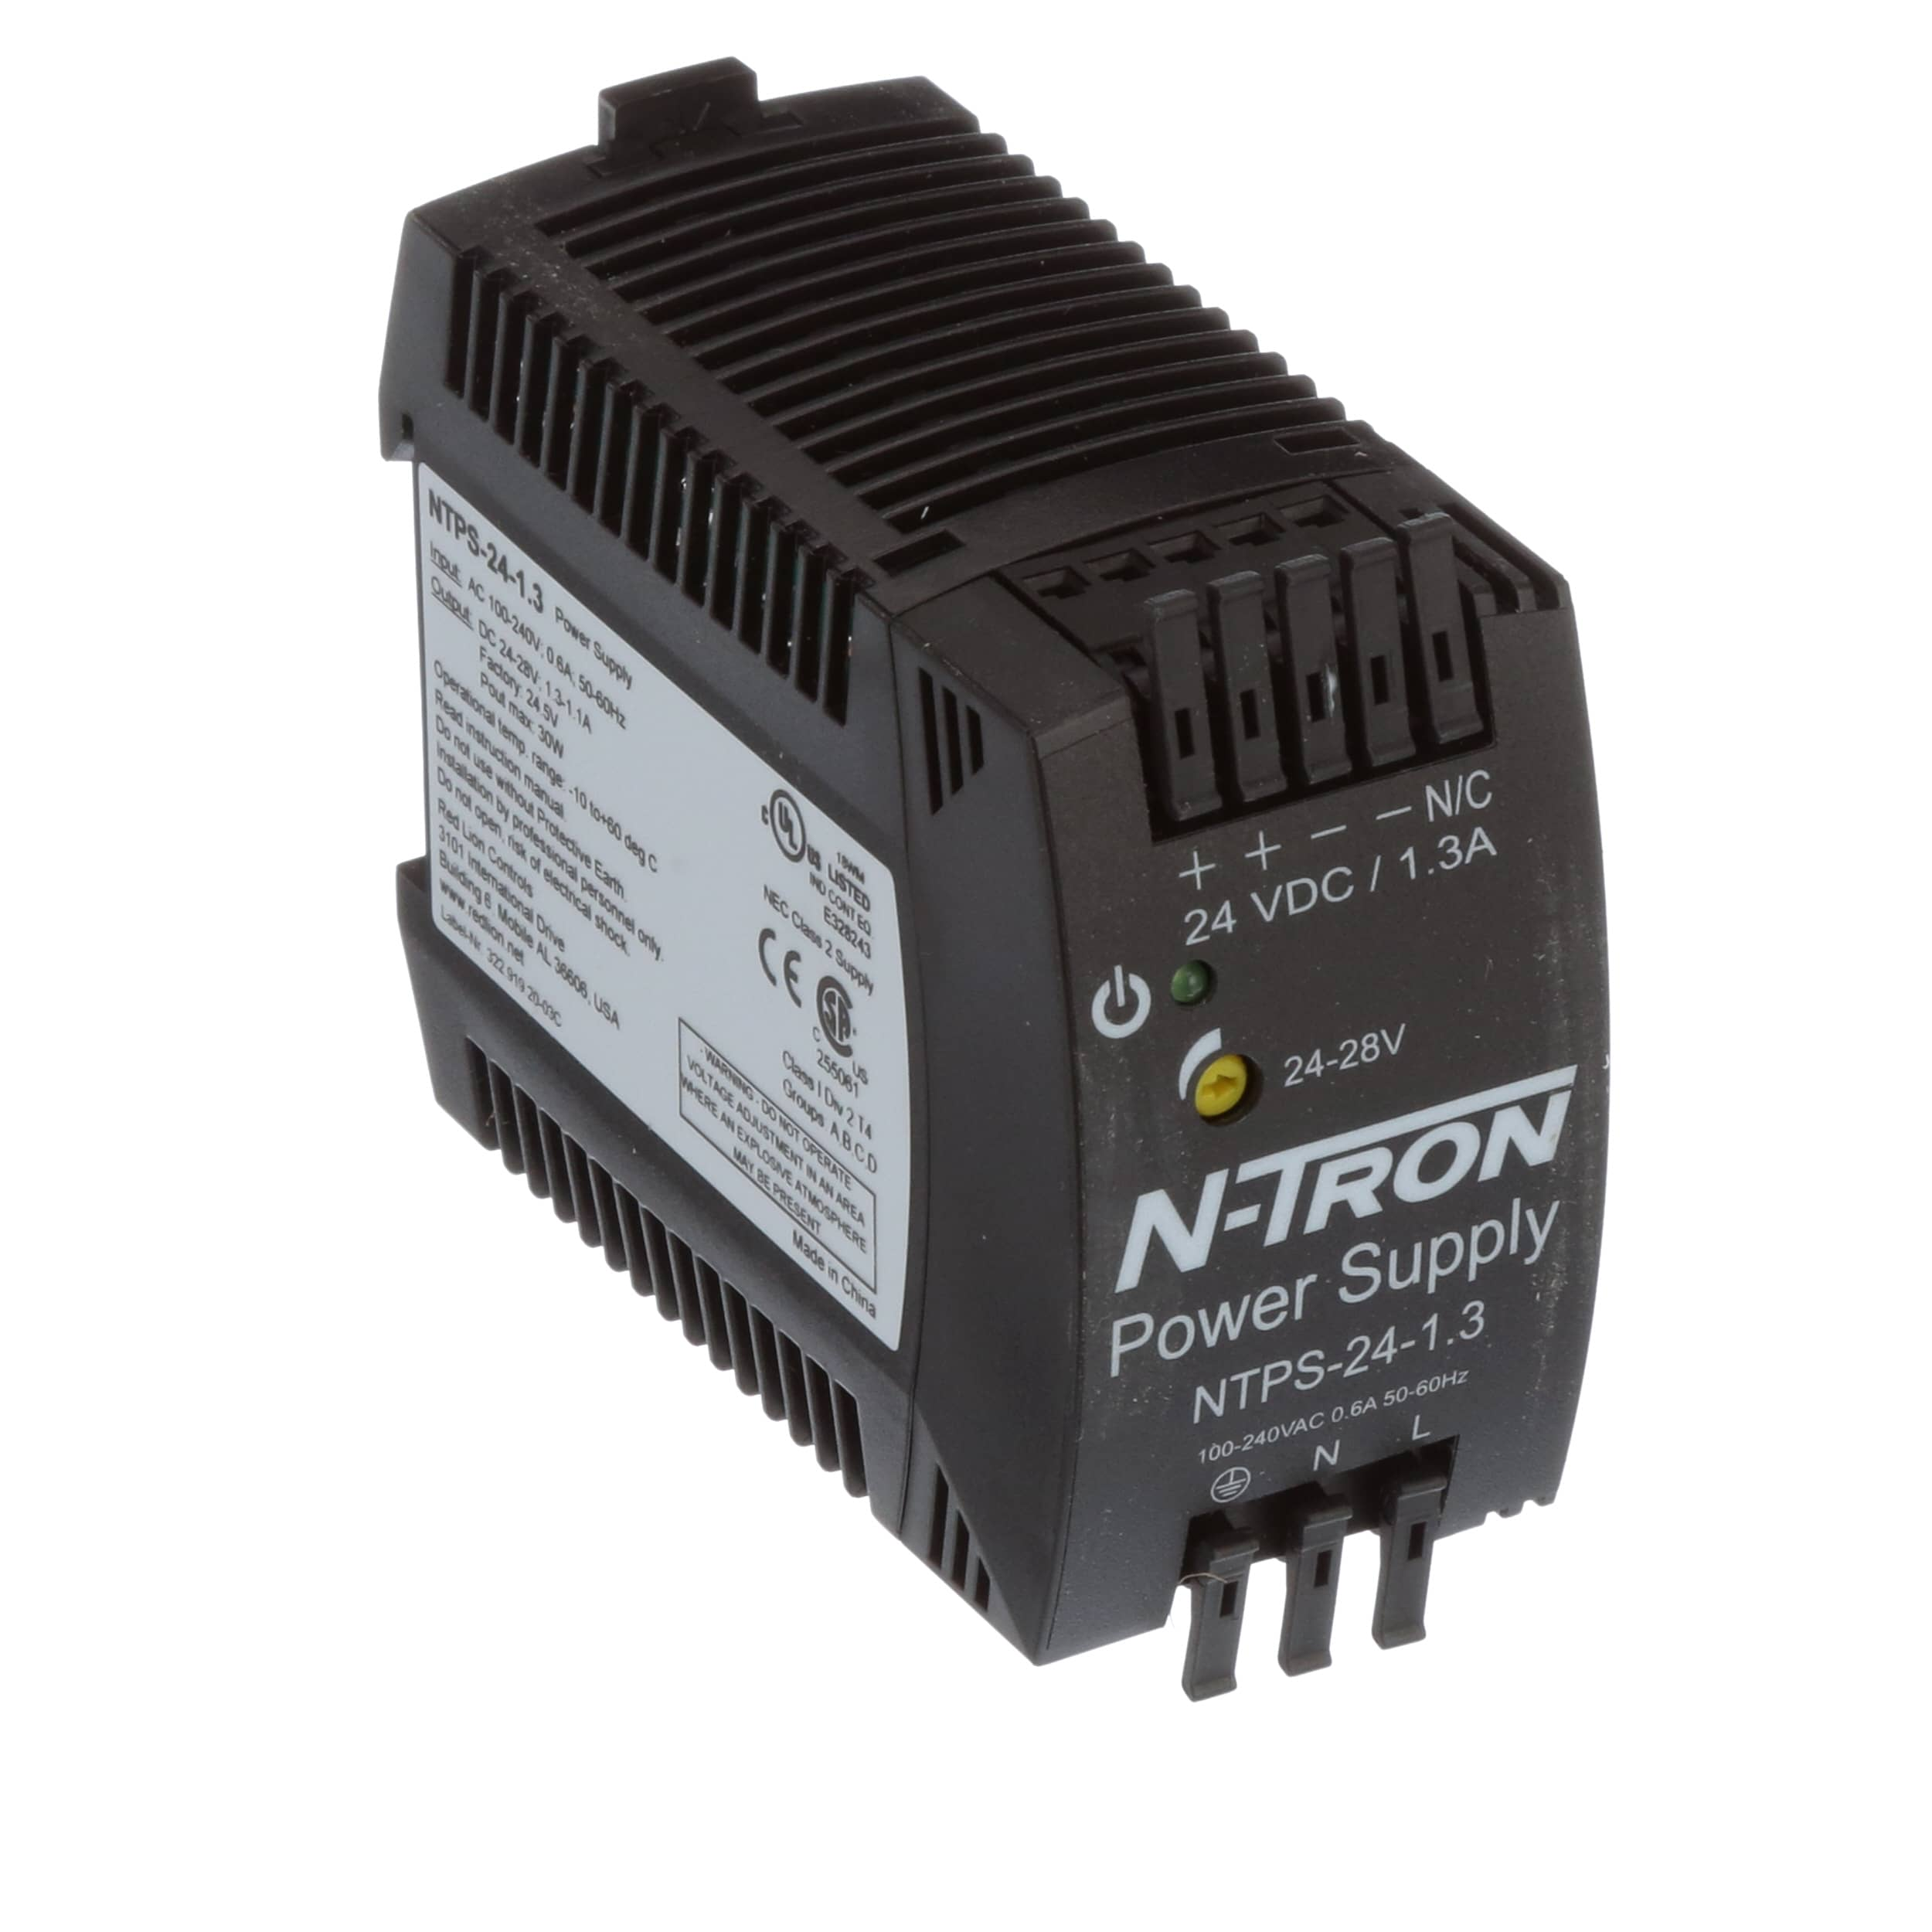 N Tron Corporation Ntps 24 13 Power Supply Ac Dc Din Rail Supplies Discrete Semiconductor Devices And Circuits Amp Vdc Allied Electronics Automation